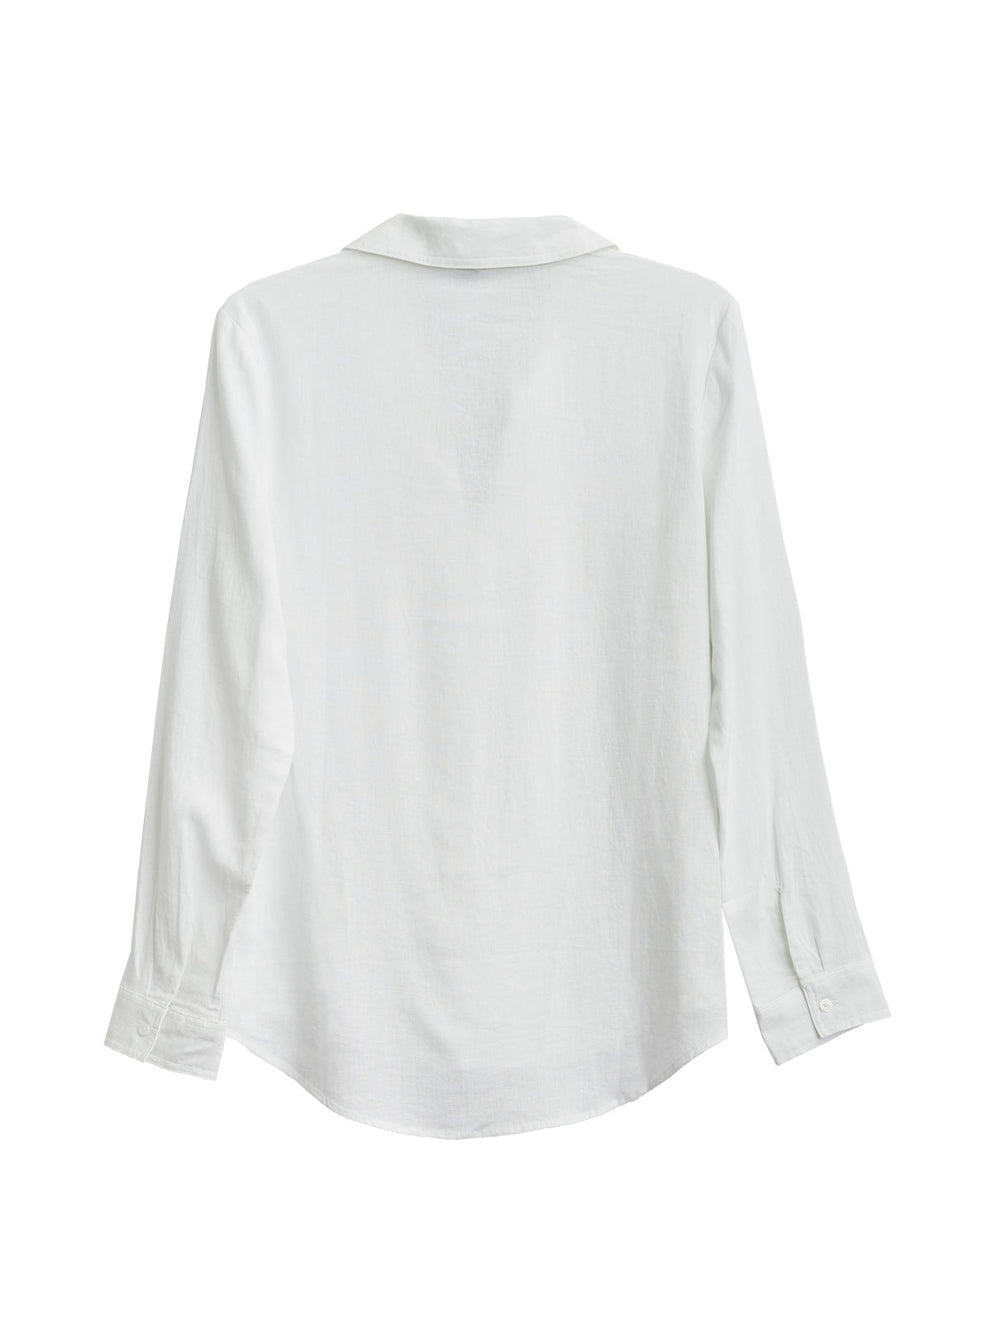 The Jones New York Pleated Popover Top in color White Linen - Image Position 2